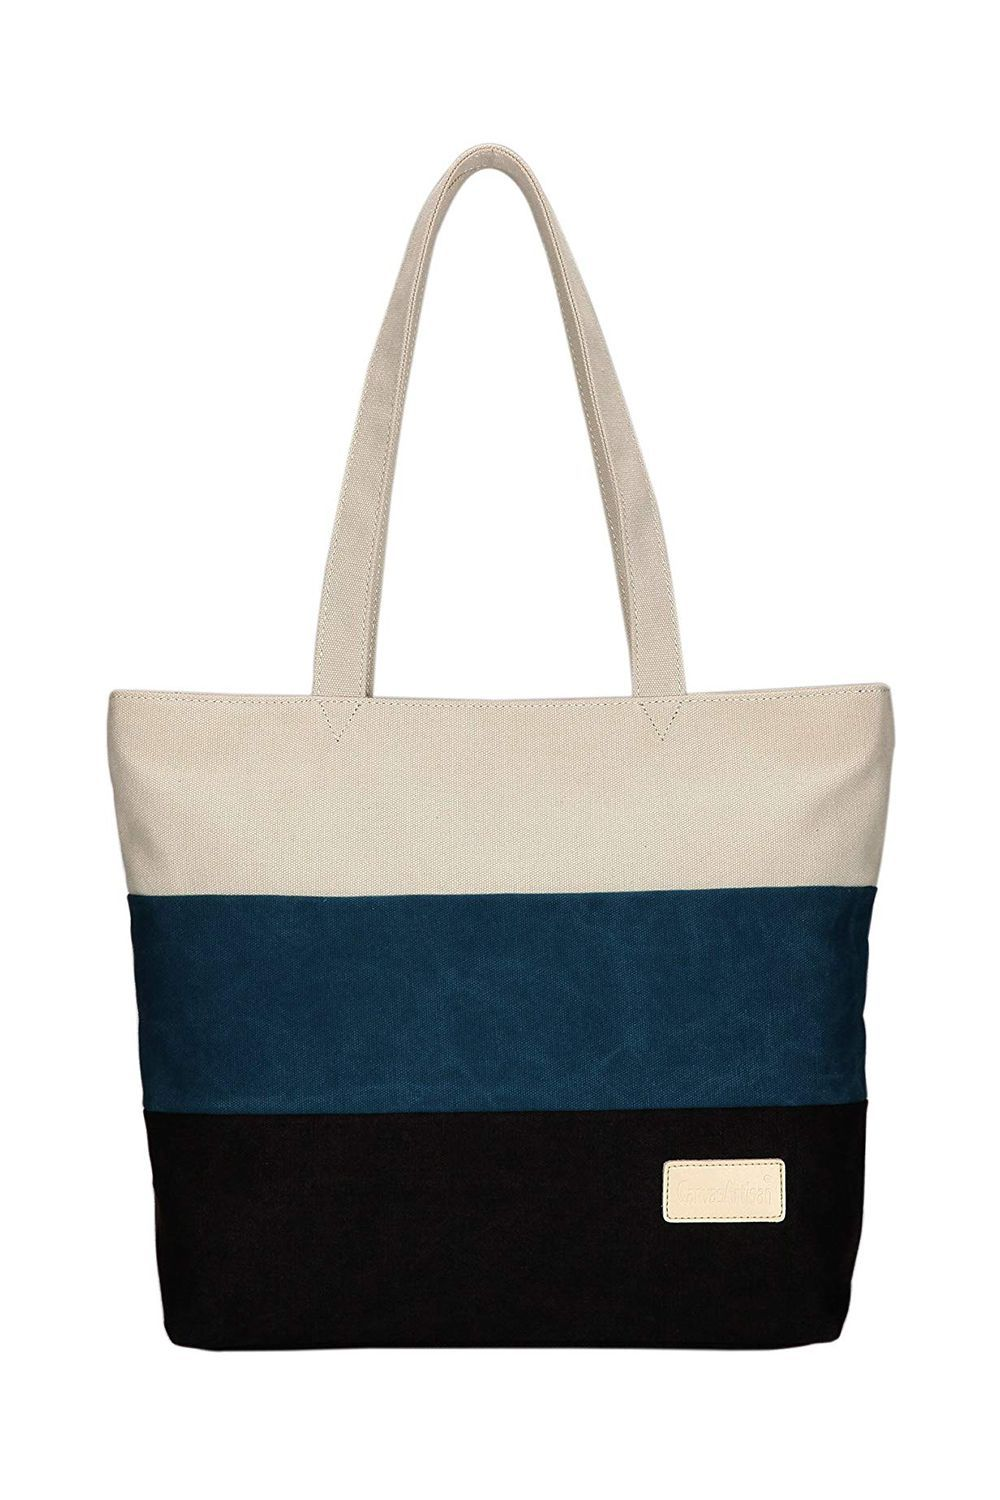 Best for Short Trips Canvas Shoulder Tote Bag ArcEnCiel $25.99 $18.98 (27% off) SHOP IT This canvas tote comes in three colors, though I like this white, navy, and black combination the best. It's lightweight, sturdy, and can be rolled up and packed into a suitcase, unlike leather totes.